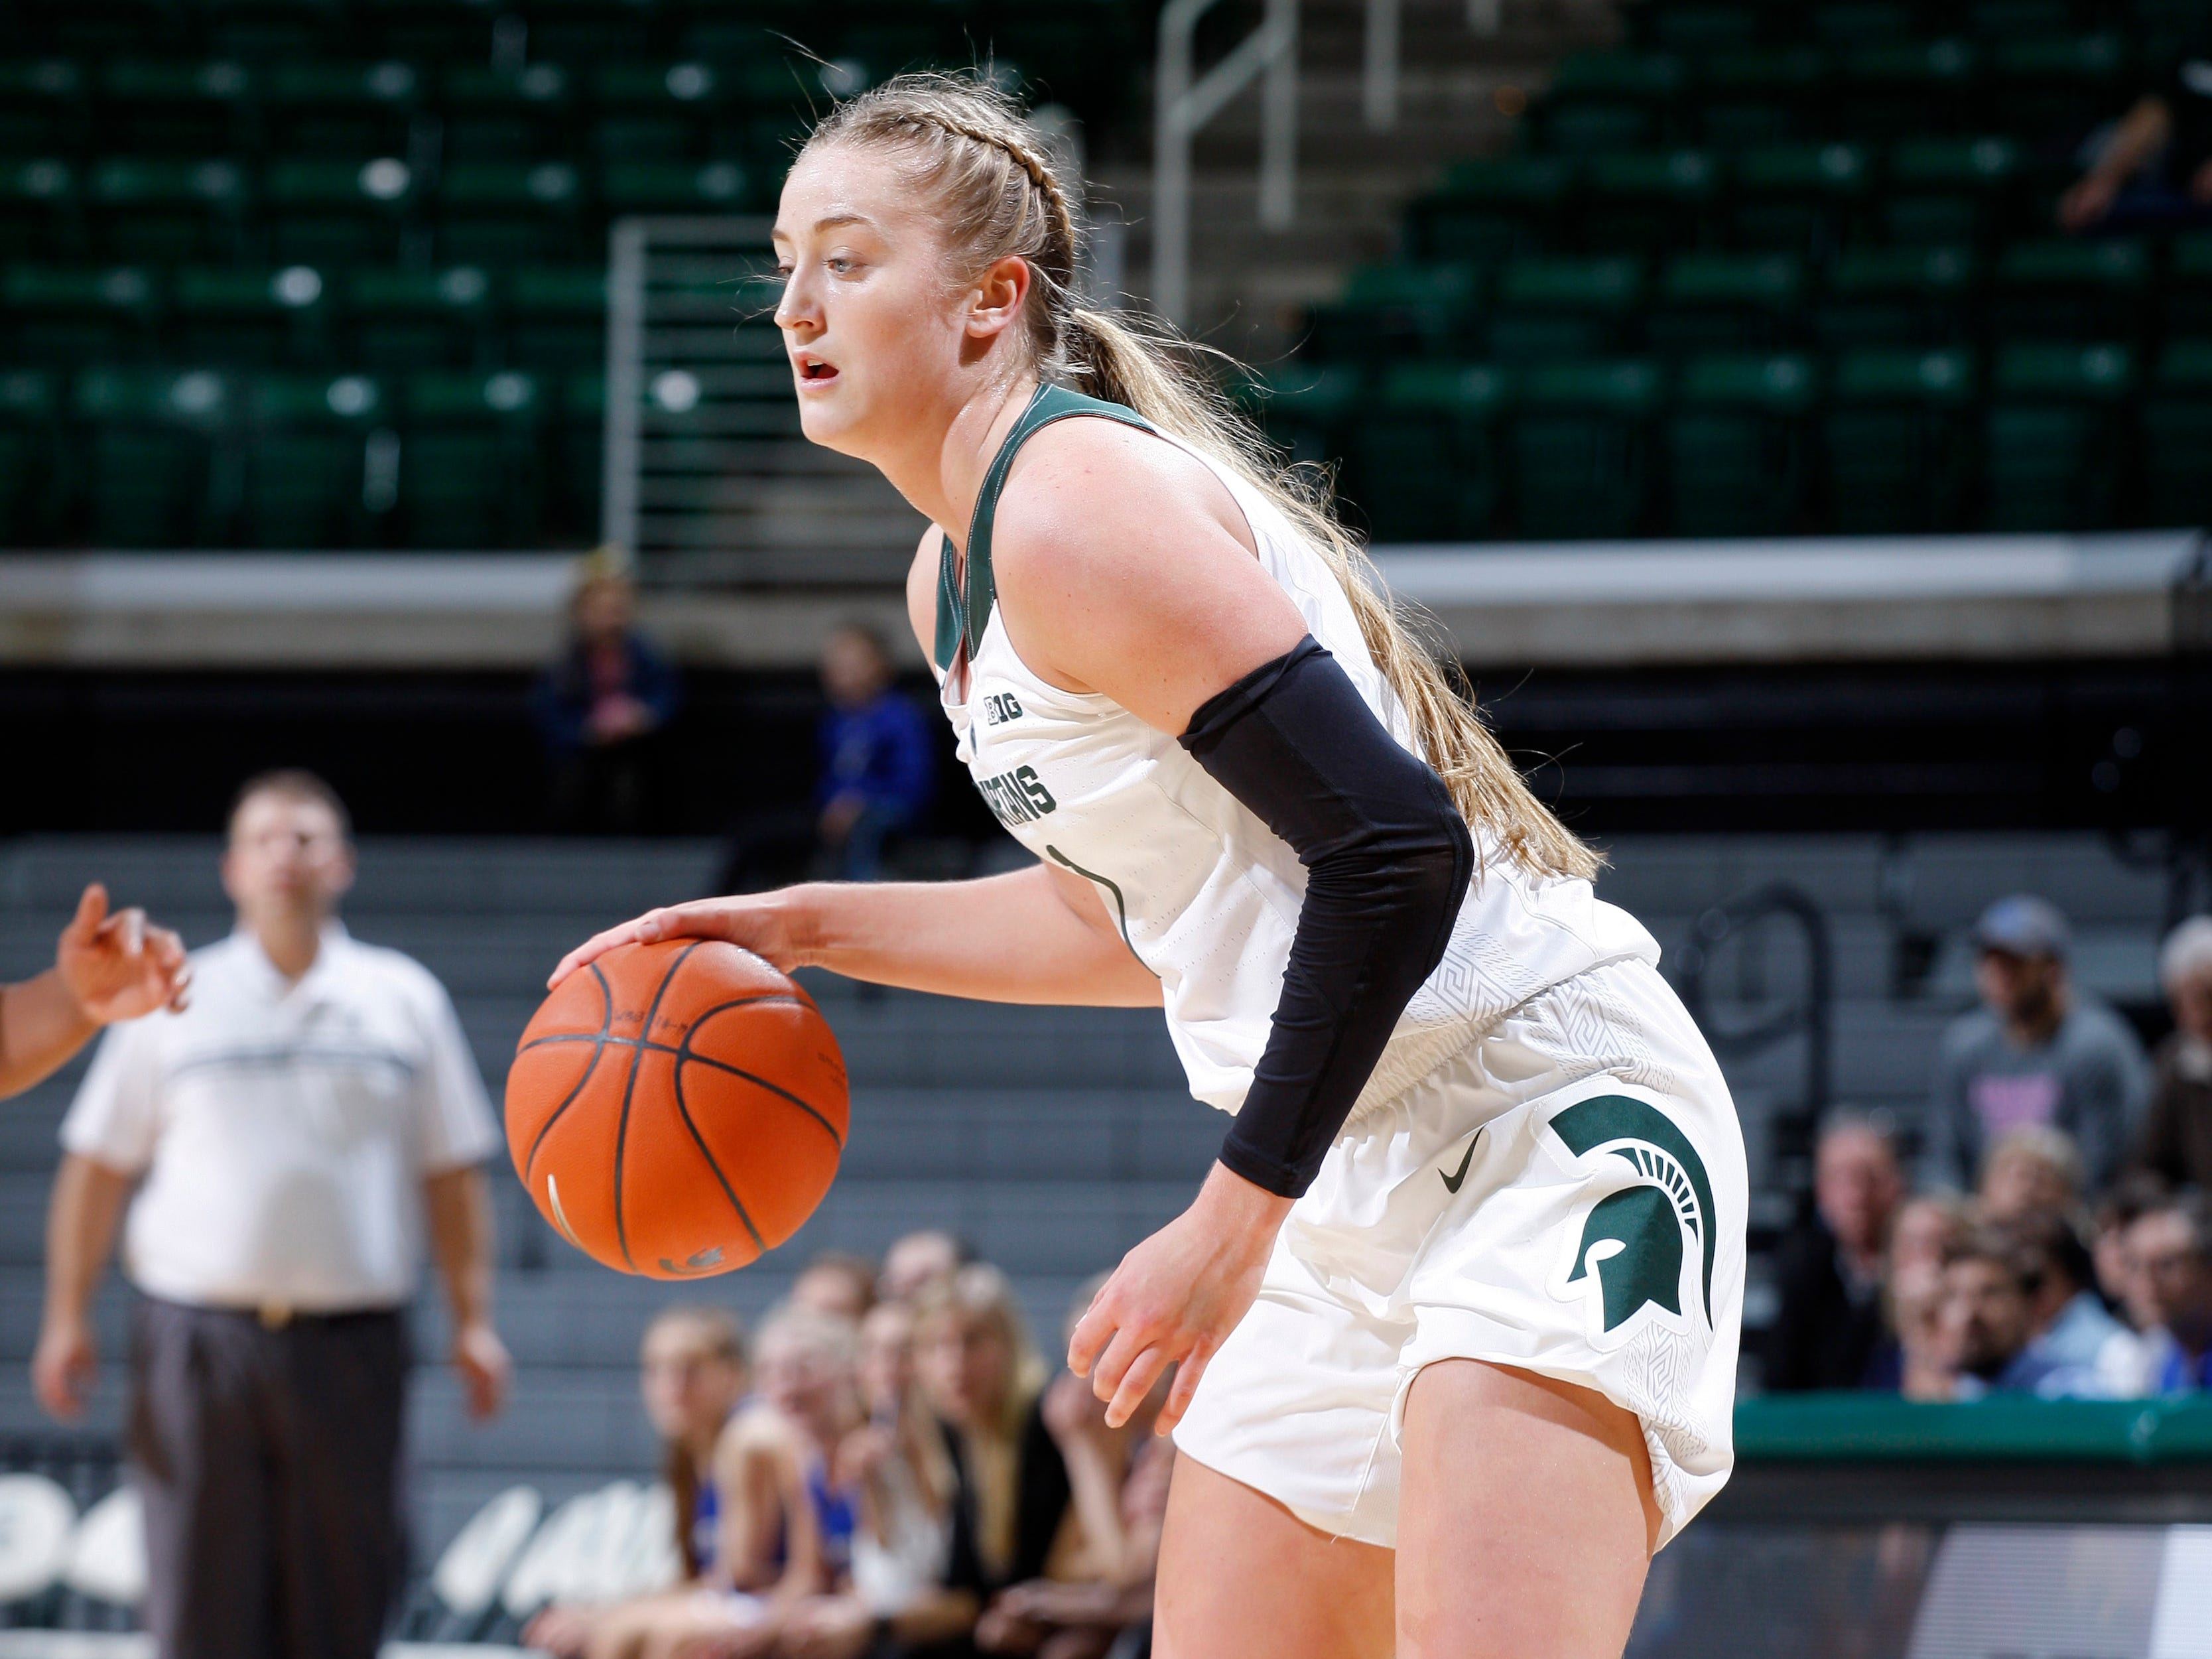 Michigan State's Tory Ozment is shown against Hillsdale, Thursday, Nov. 1, 2018, in East Lansing, Mich.